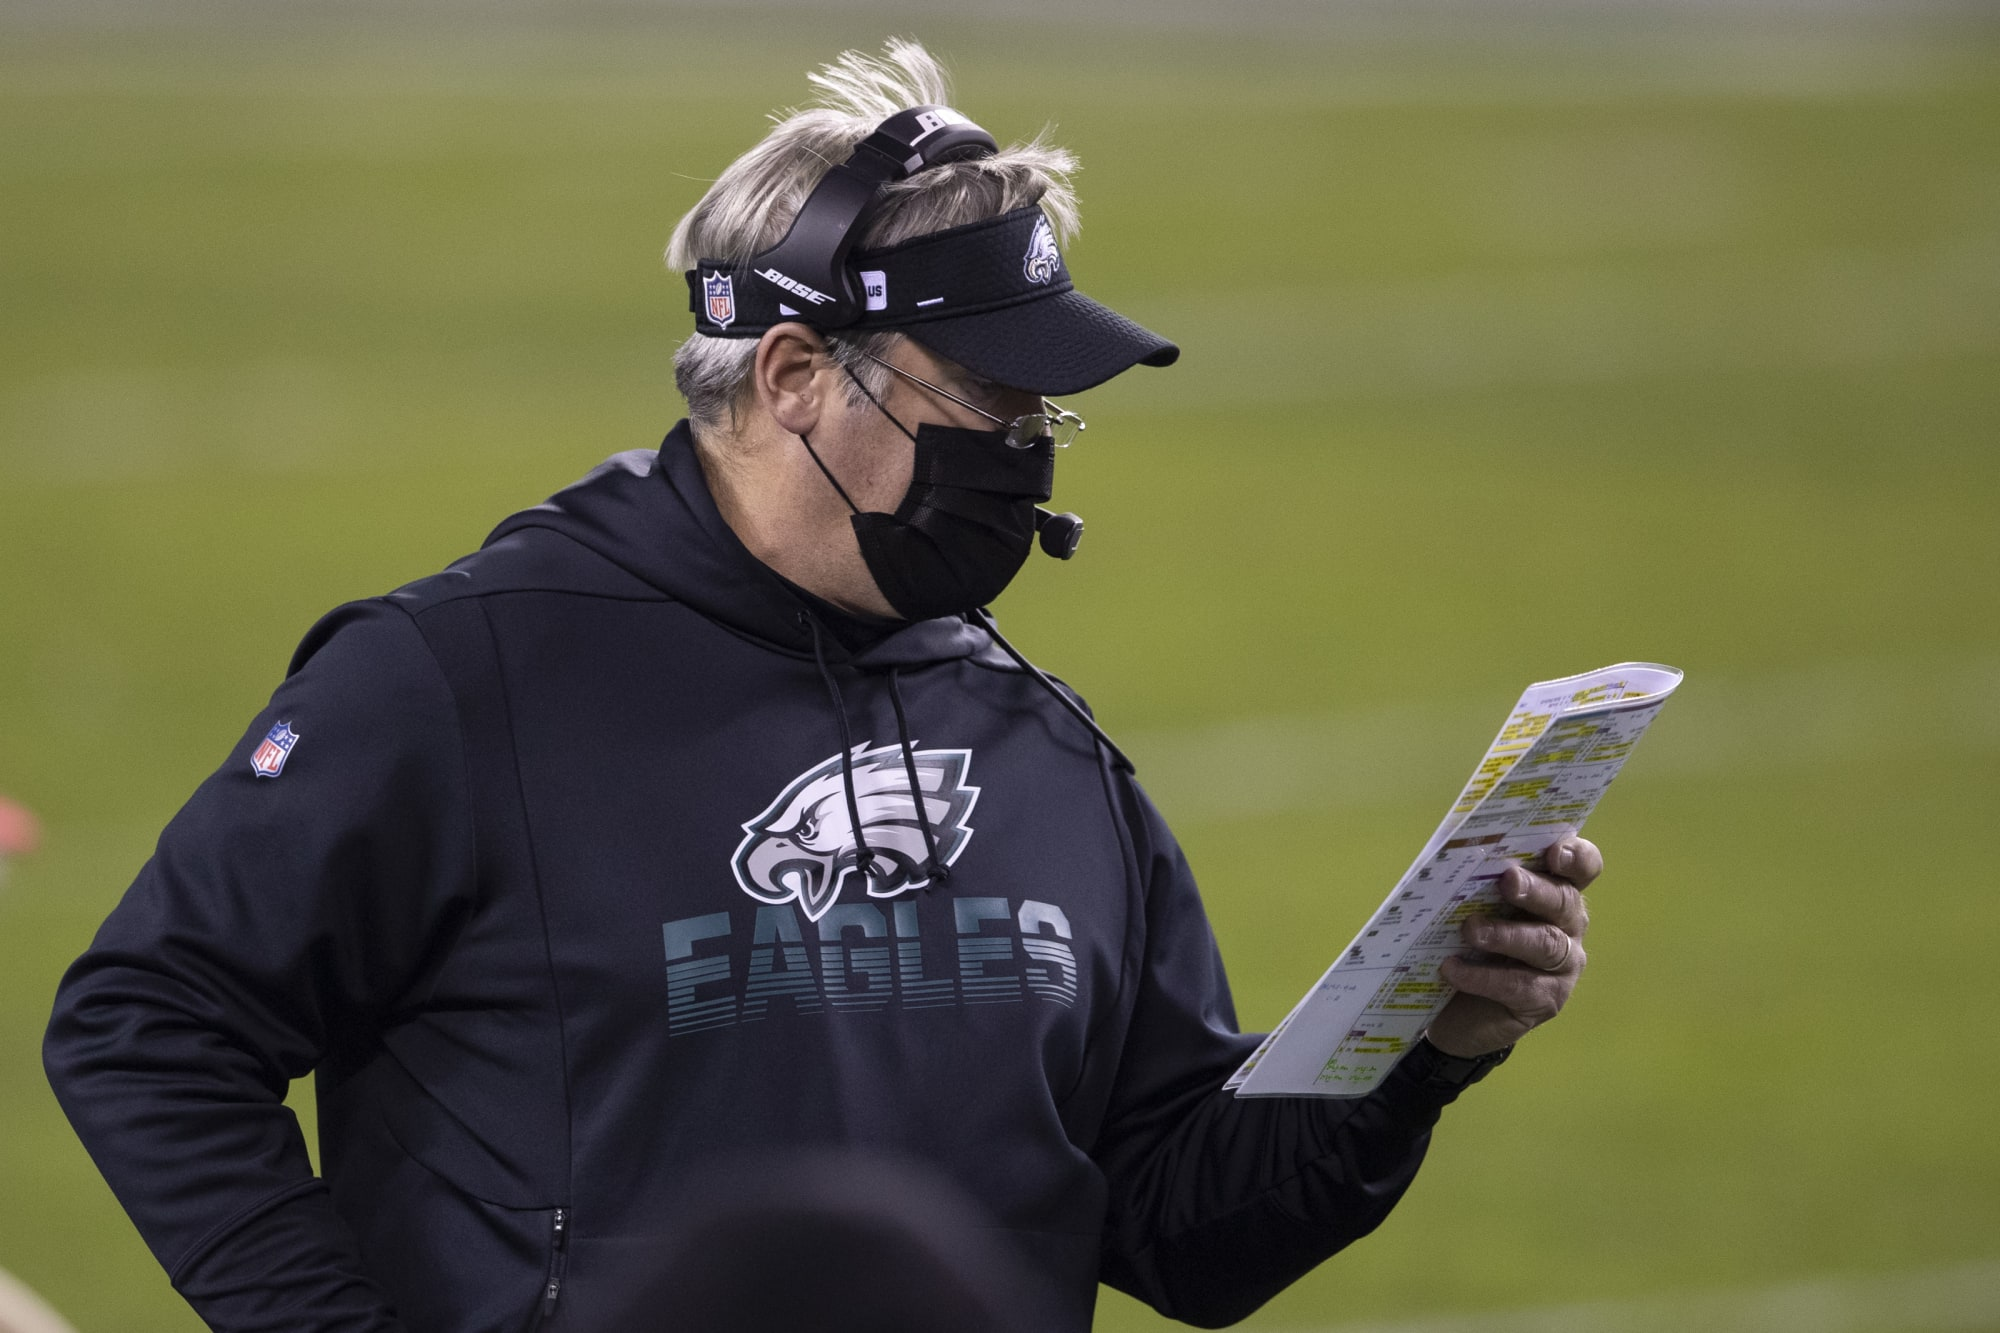 Steelers need to hire Doug Pederson to fix the offense